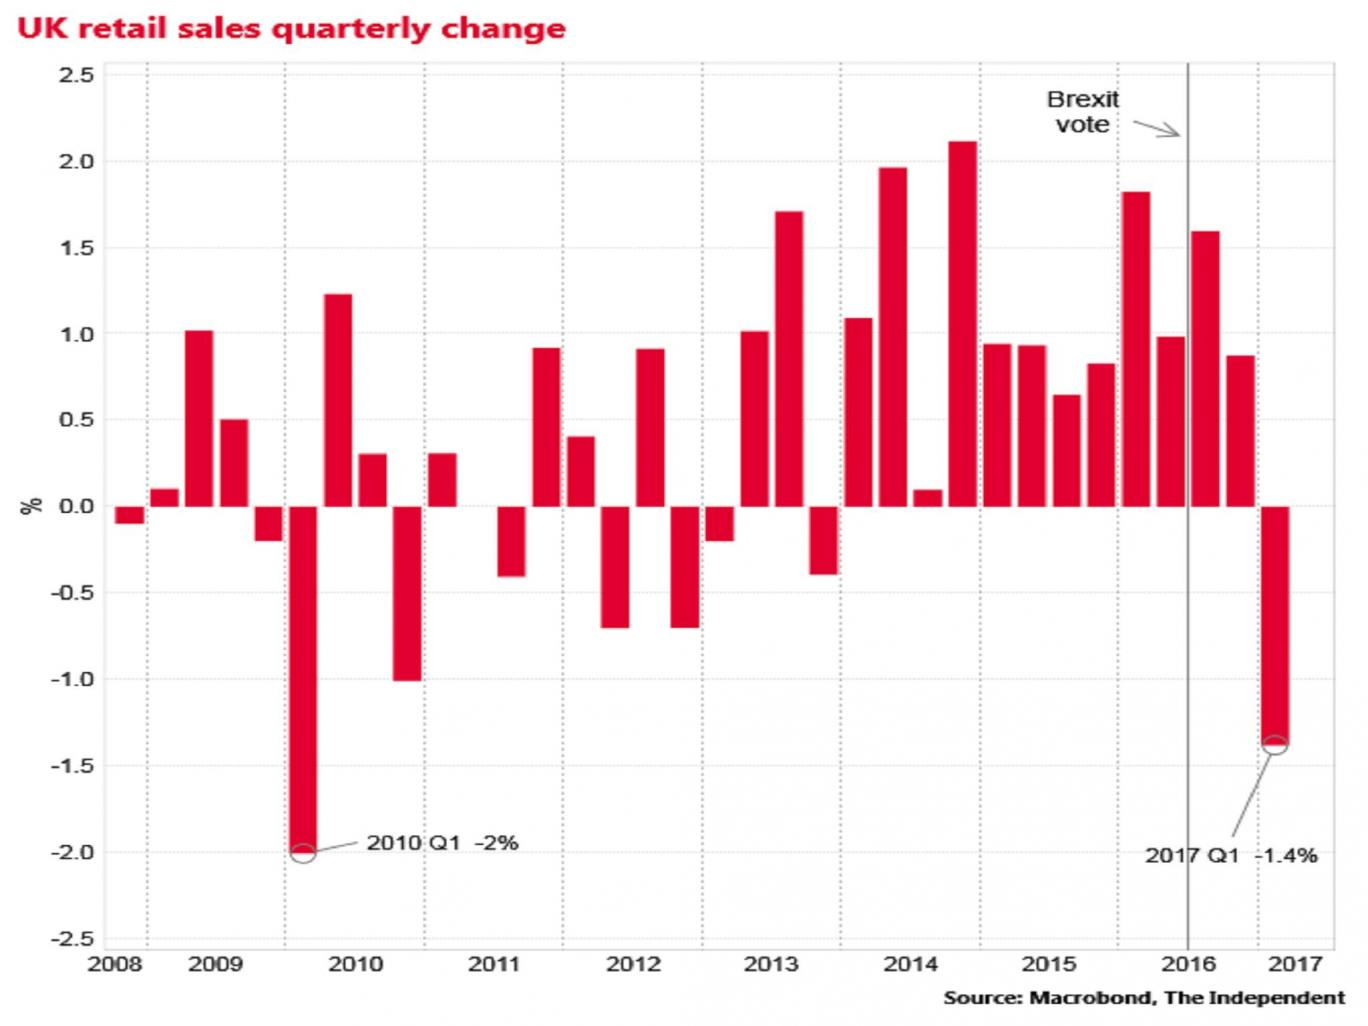 Brexit: Retail sales in UK fall to the lowest rate in the last 7 years